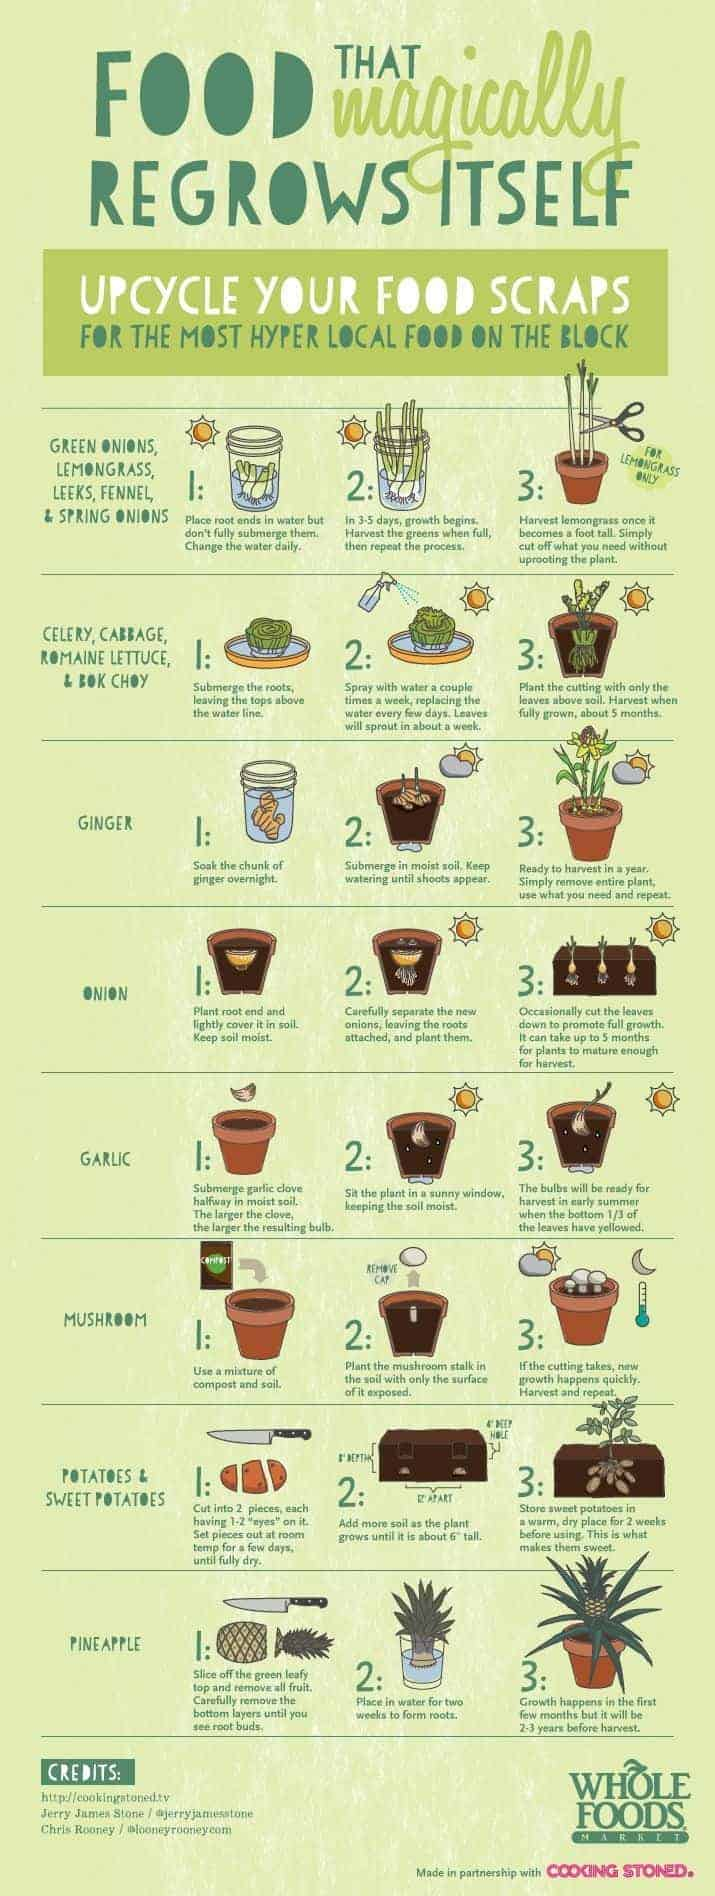 Upcycle Your Food Scraps - flowers-plants-planters